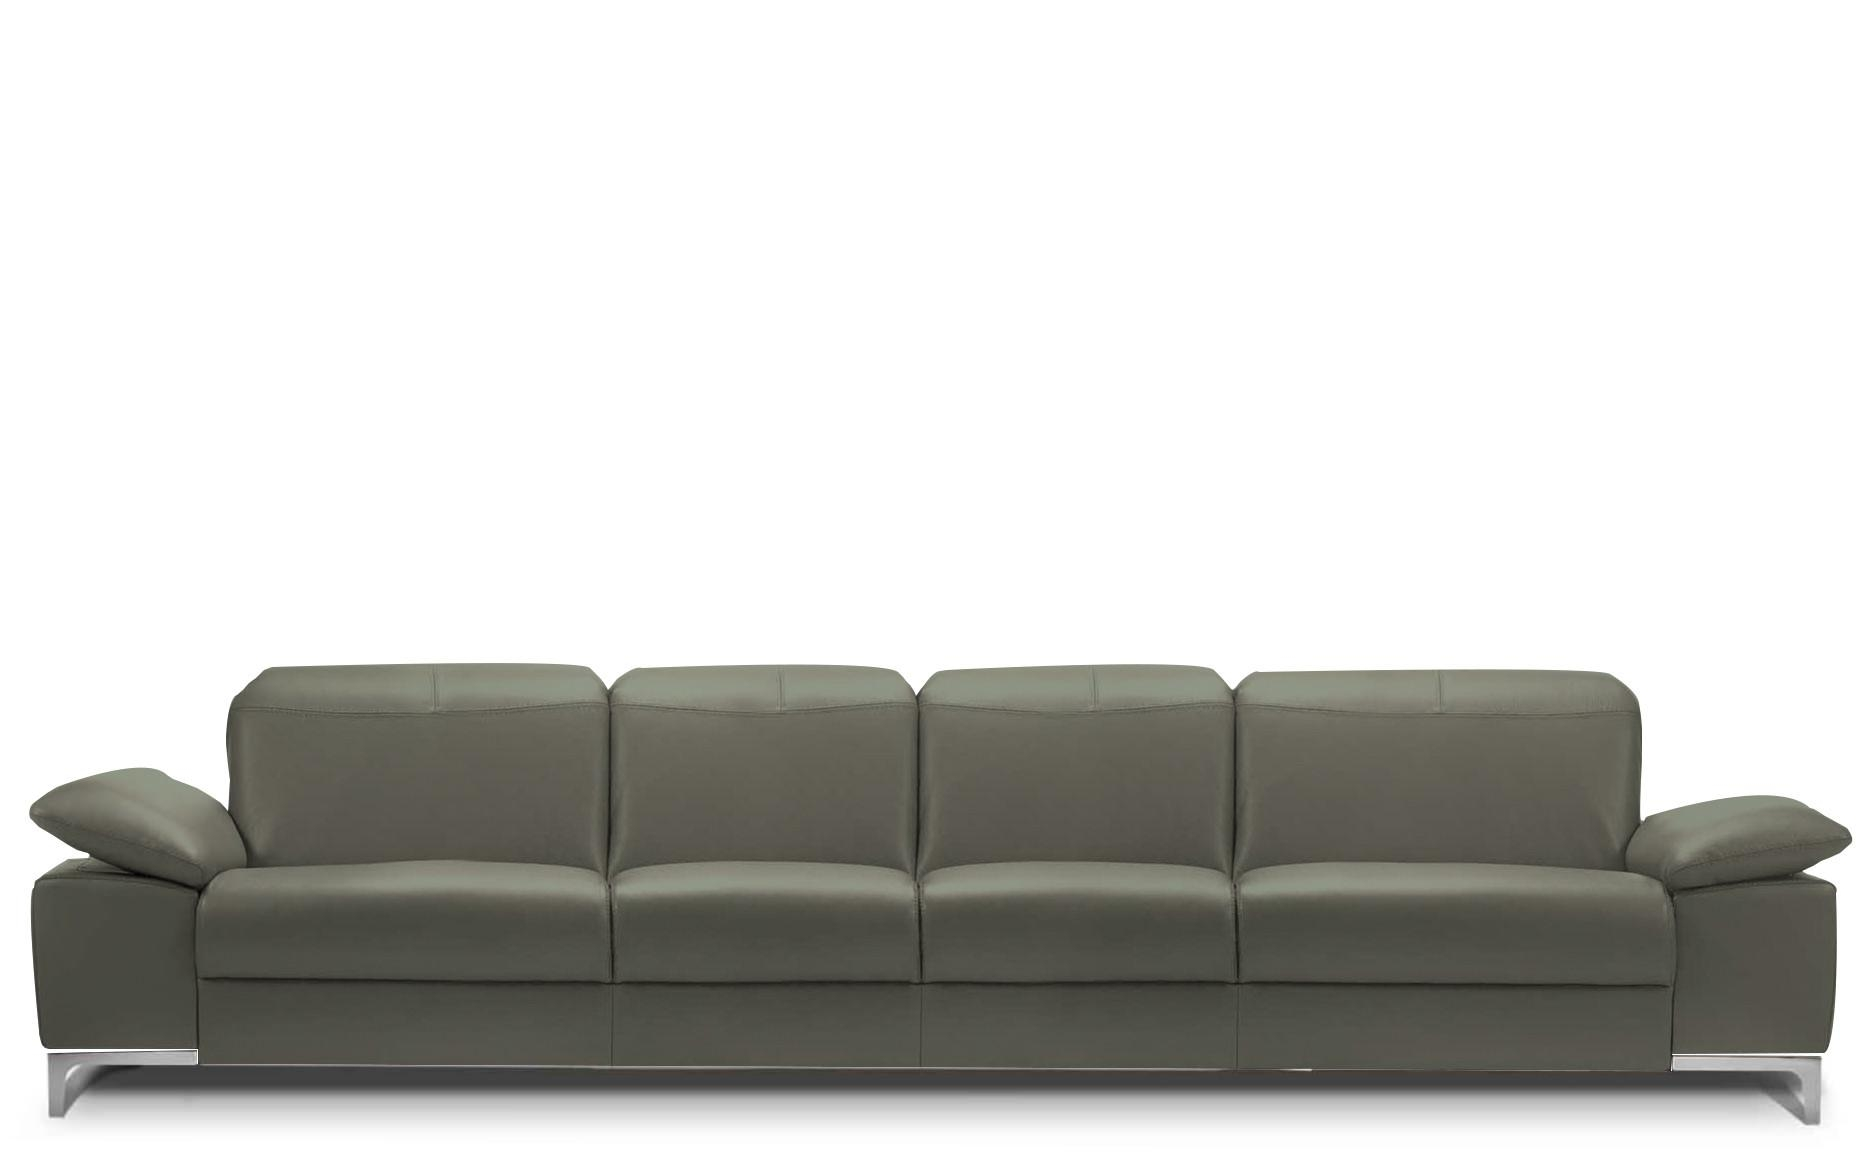 Rom Chronos 4 Seater Leather Sofa | Buy At Kontenta Regarding 4 Seat Sofas (Image 19 of 20)